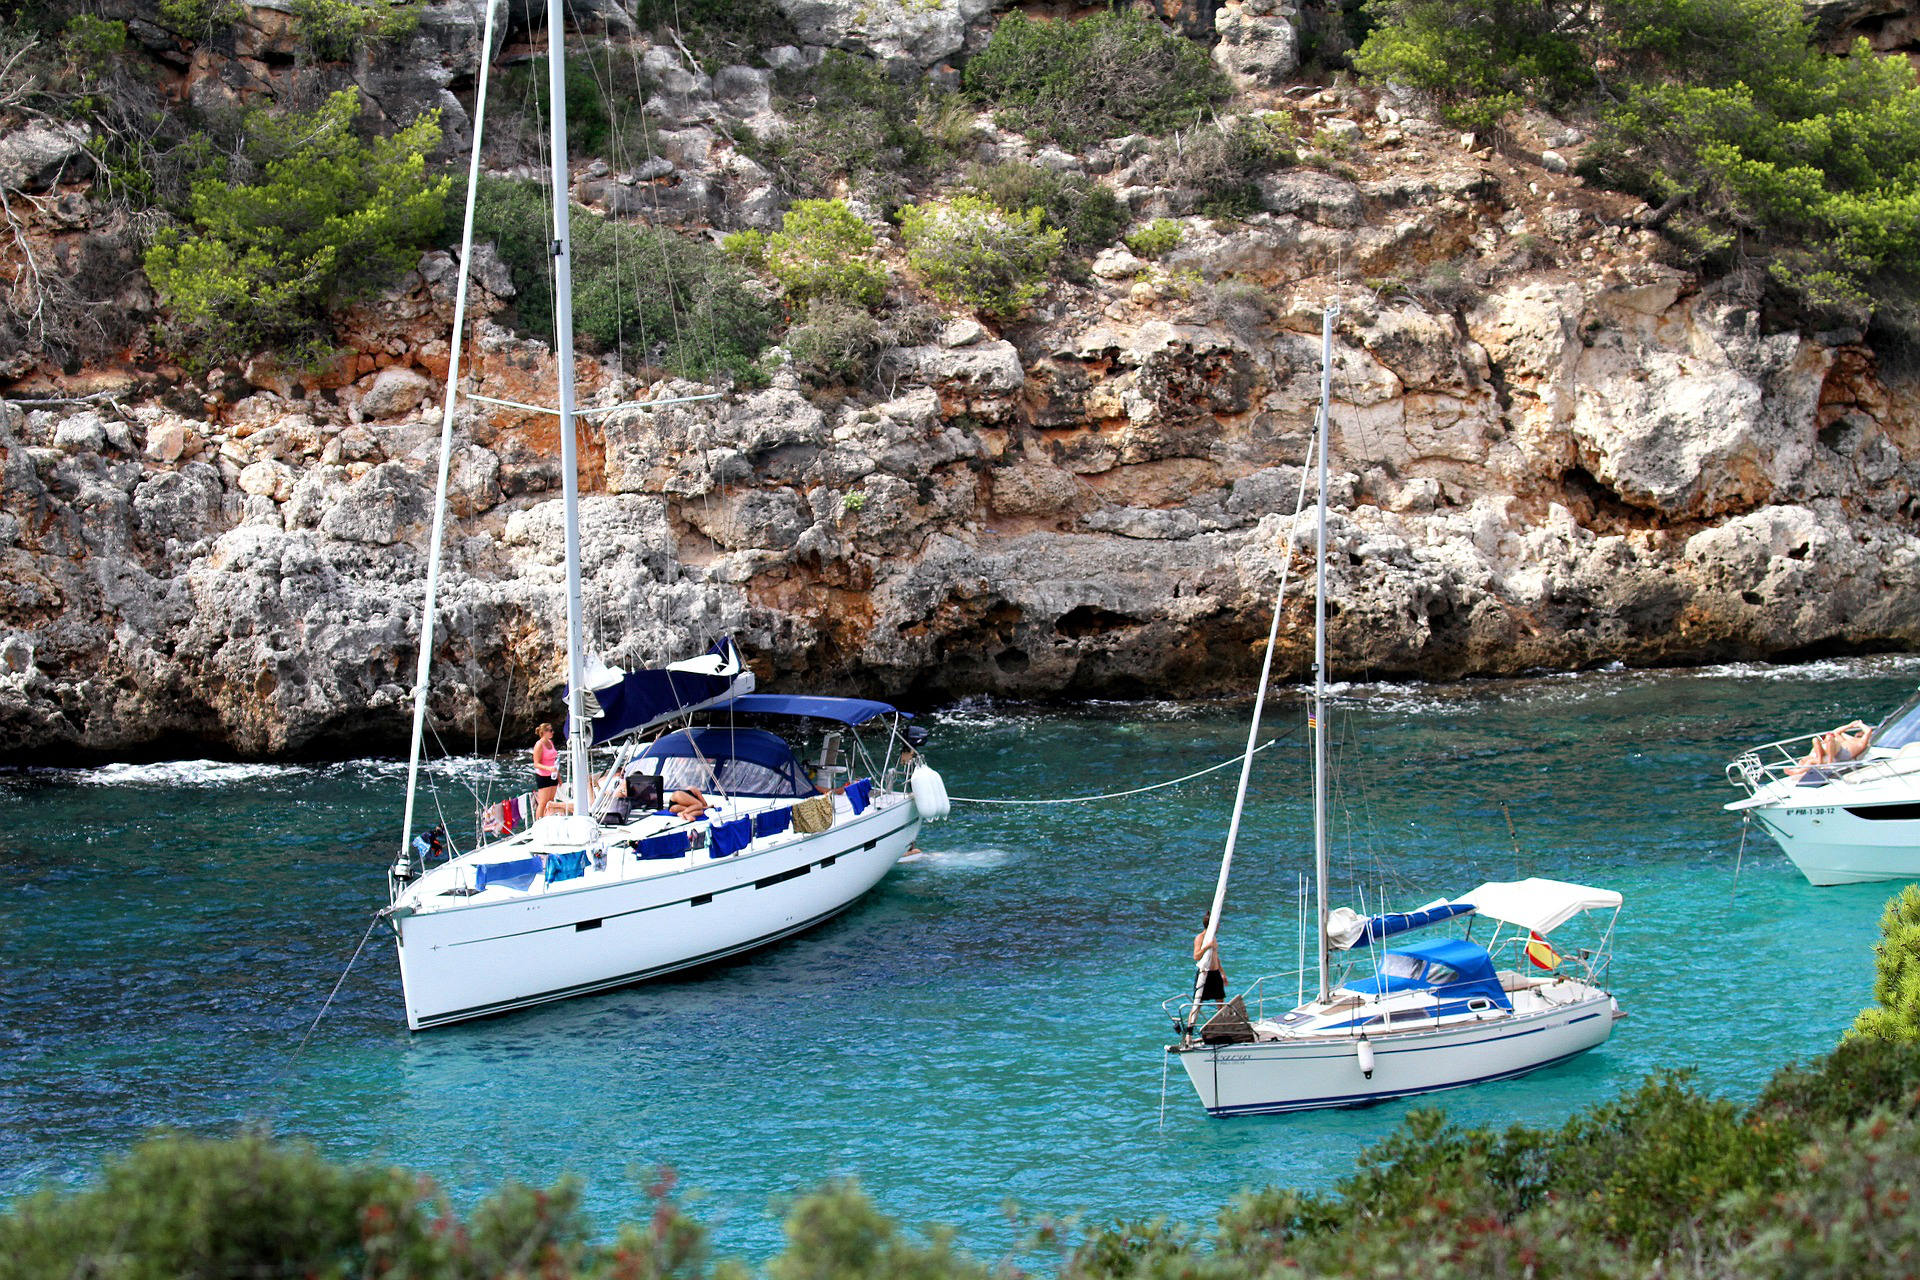 Yachtcharter Spanien - Trend Travel & Yachting